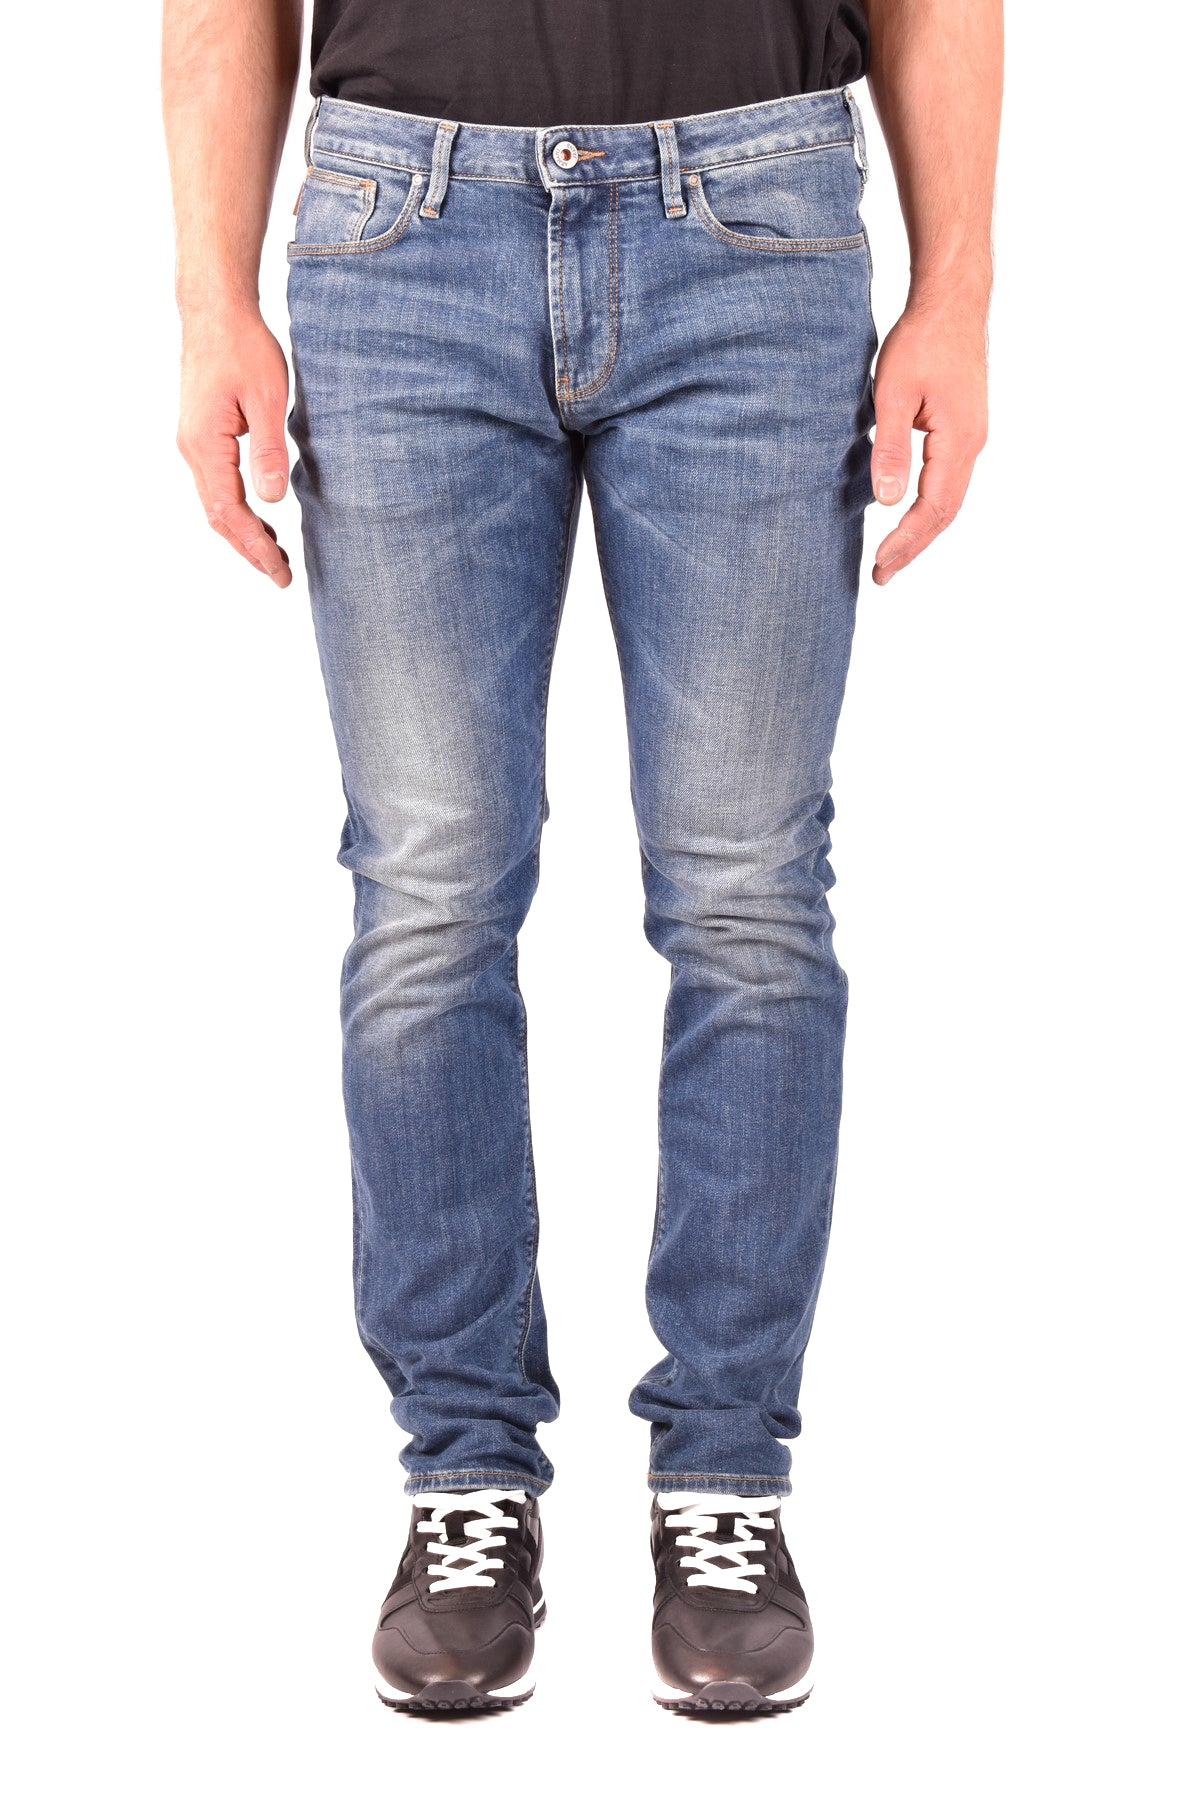 Jeans Armani Jeans-Men's Fashion - Men's Clothing - Jeans-31-Product Details Main Color: BlueClothing Type: JeansTerms: New With LabelSeason: Spring / SummerMade In: TunisiaGender: ManSize: UsComposition: Cotton 99%, Elastane 1%Year: 2020Manufacturer Part Number: 6Y6J06 6D04Z 0551-Keyomi-Sook